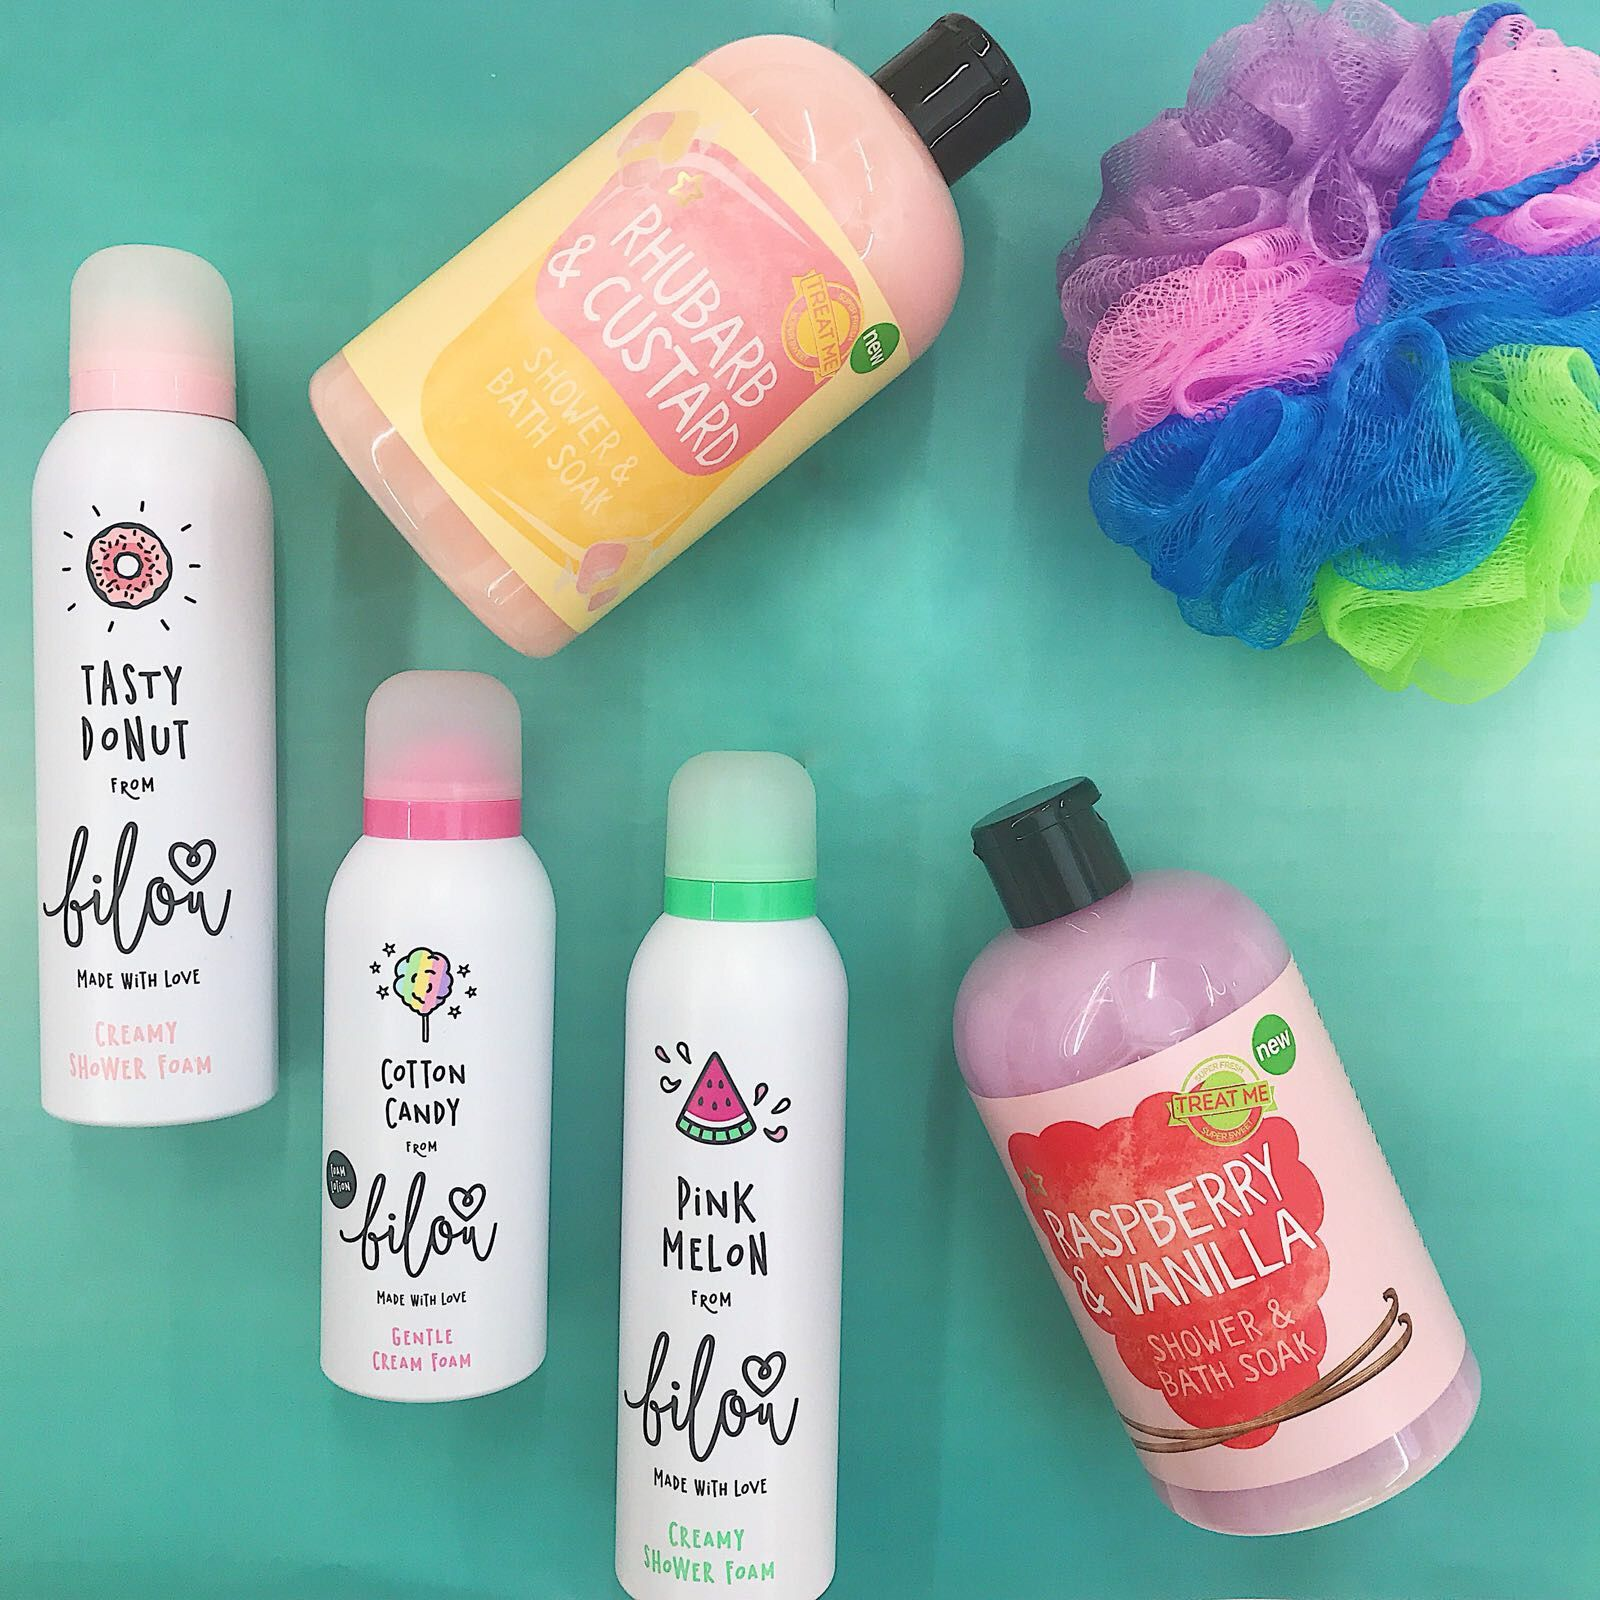 Keep Bath Time Fun And Cruelty Free With Vegan Brands Like Bilou